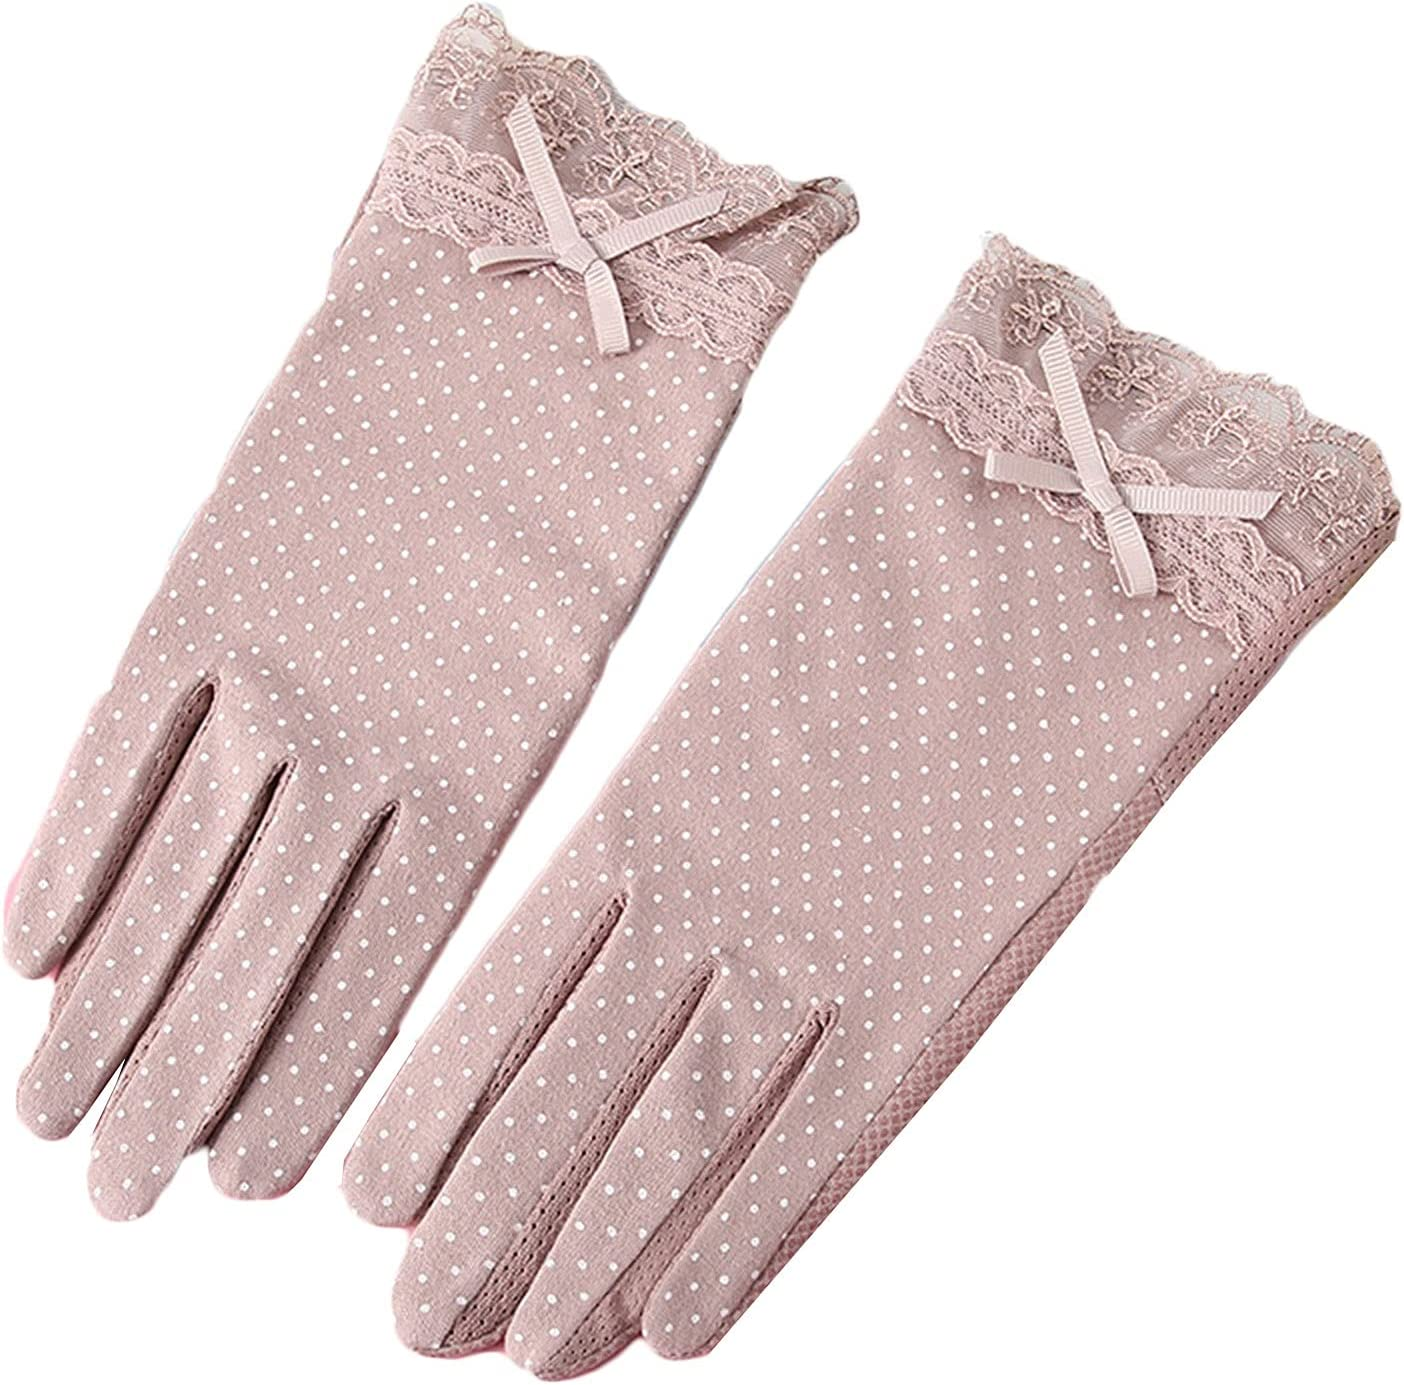 FAYDOO Thin Gloves Sunscreen Gloves Ladies Touch Screen Thin Summer Spring and Autumn Warm Gloves (Color : Pink)